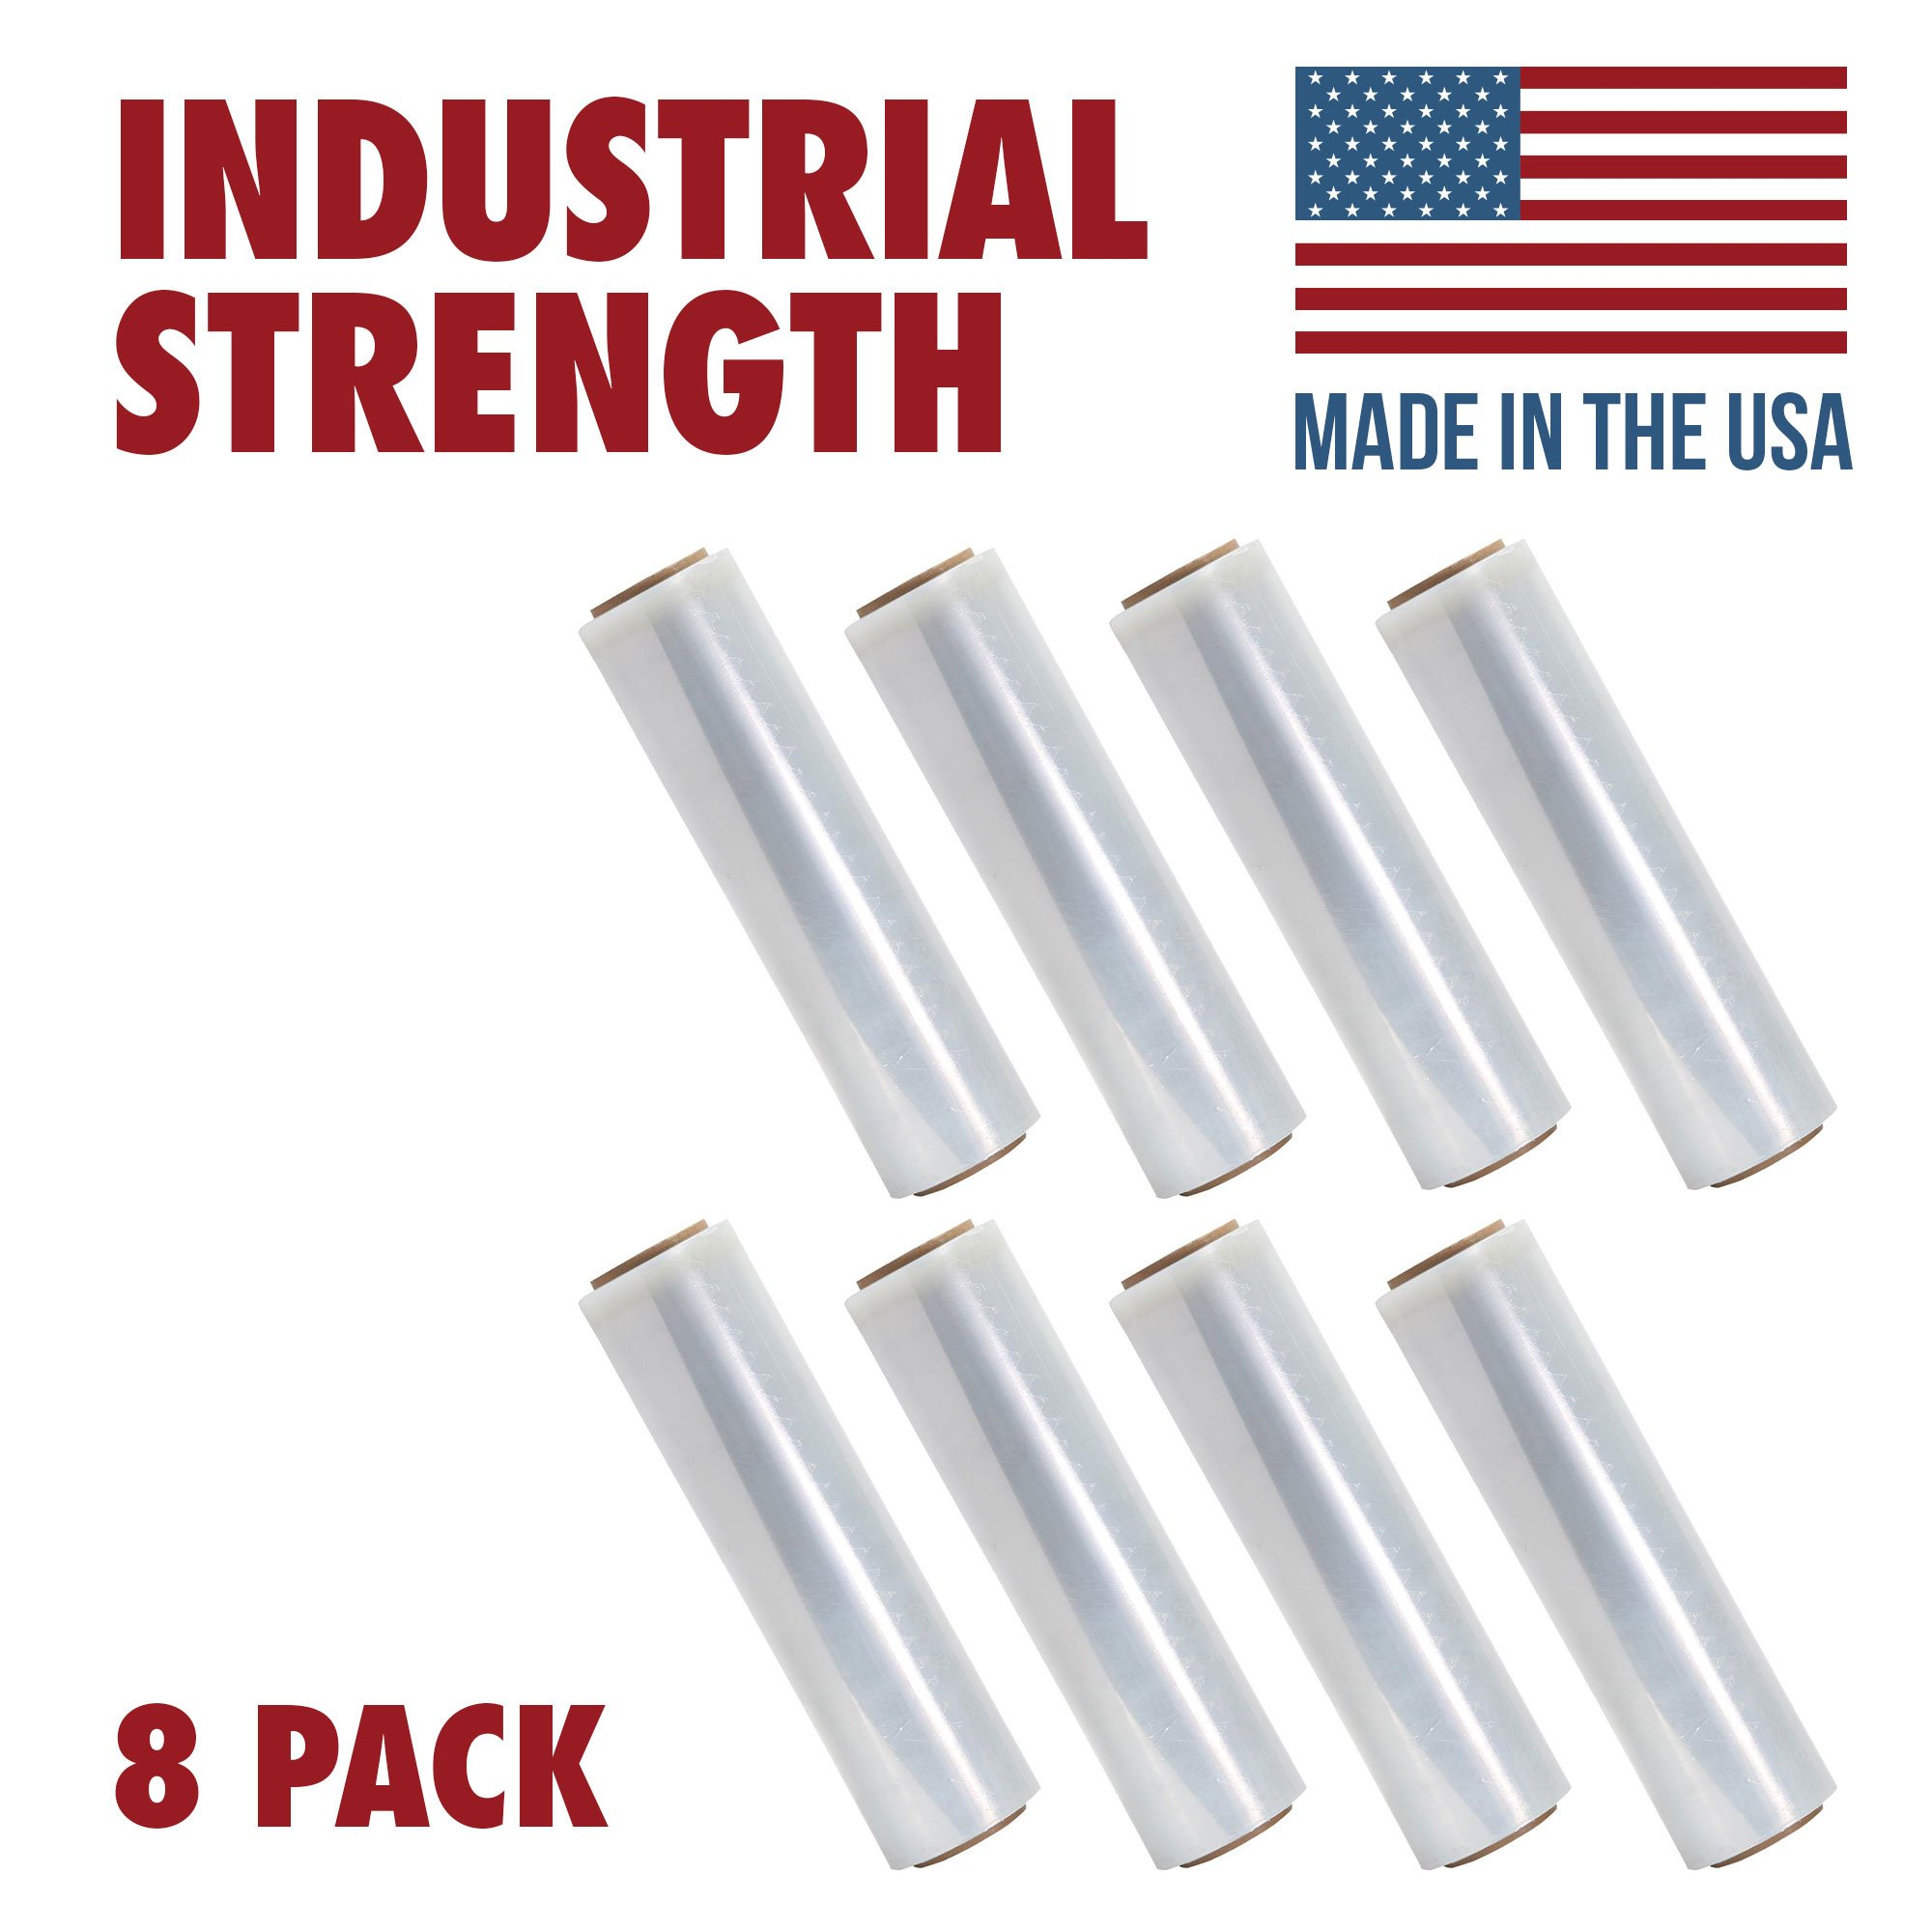 Tough Pallet Shrink Wrap, 80 Gauge 18 Inch X 1000 feet Industrial Strength, Commercial Grade Strength Film, Moving & Packing Wrap, For Furniture, Boxes, Pallets (8-Pack)